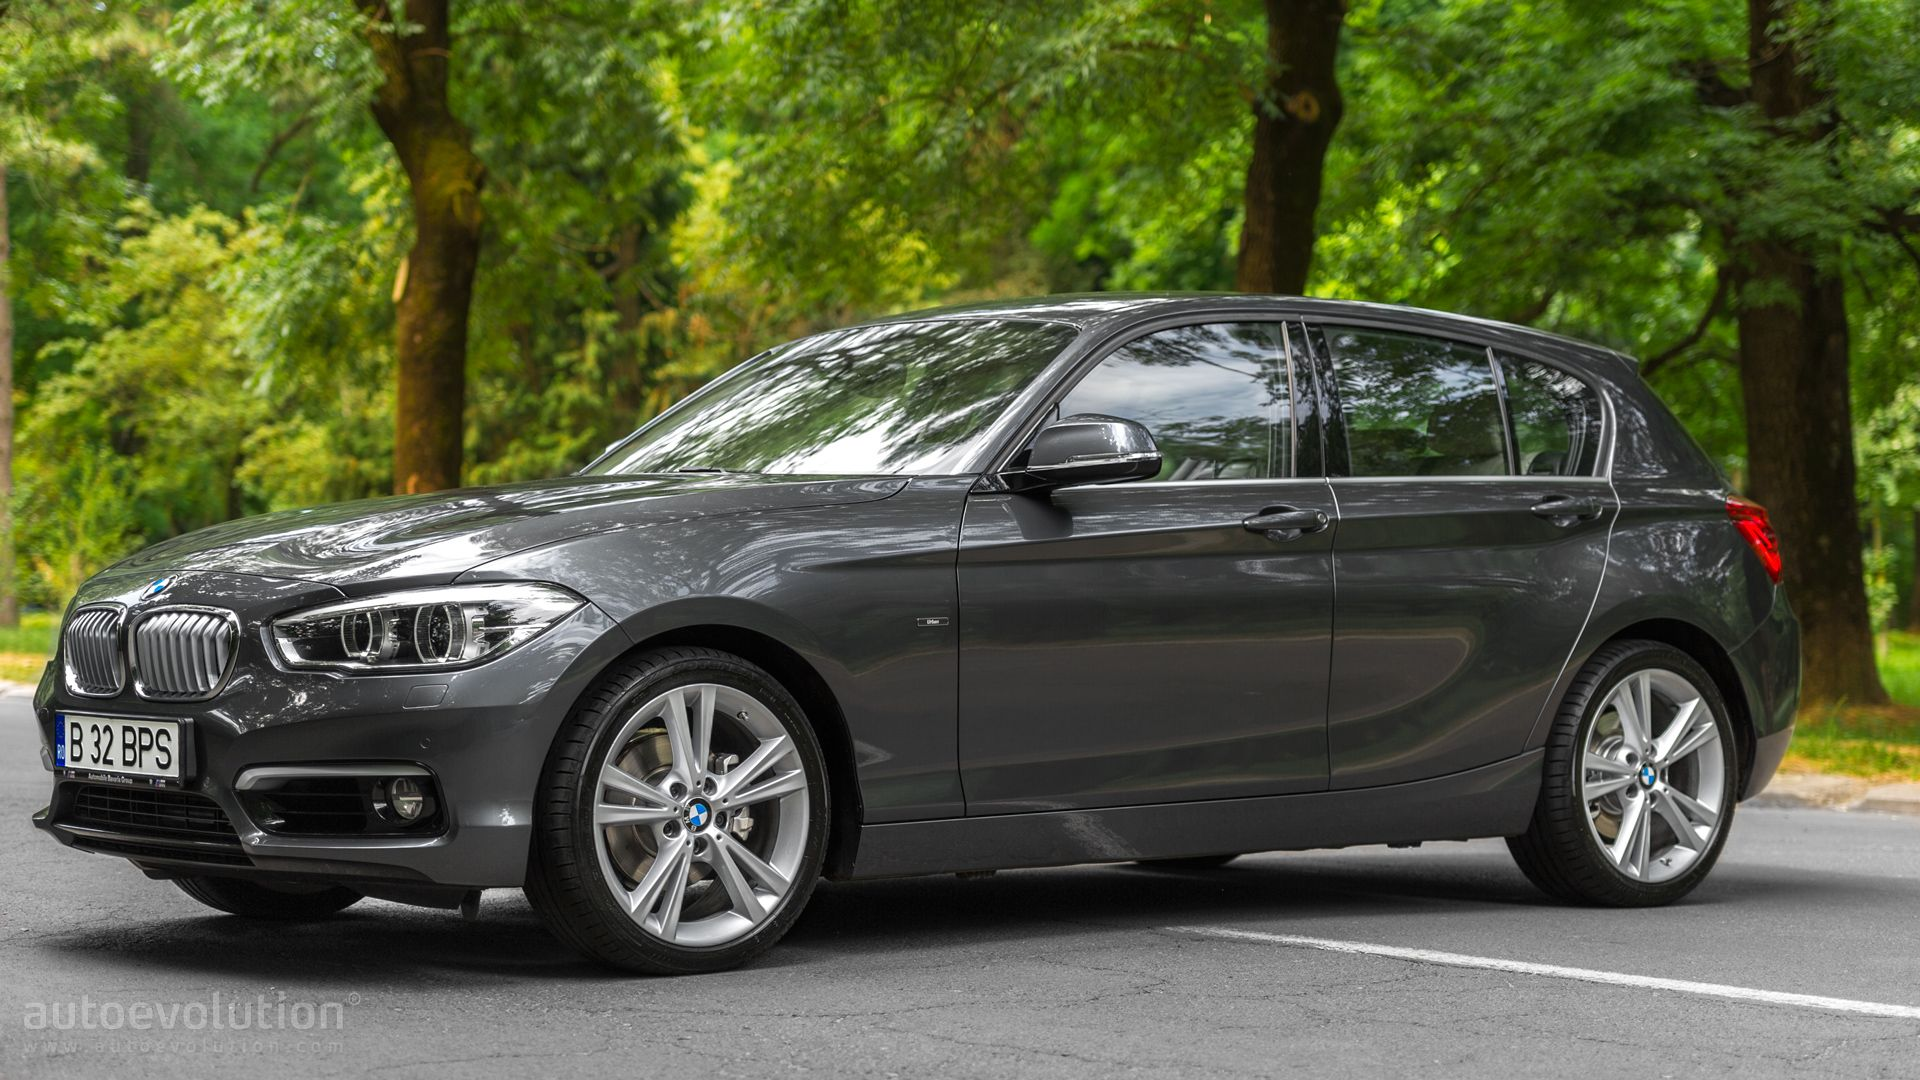 2015 BMW 1 Series Facelift Tested The Joys of Rear Wheel Drive